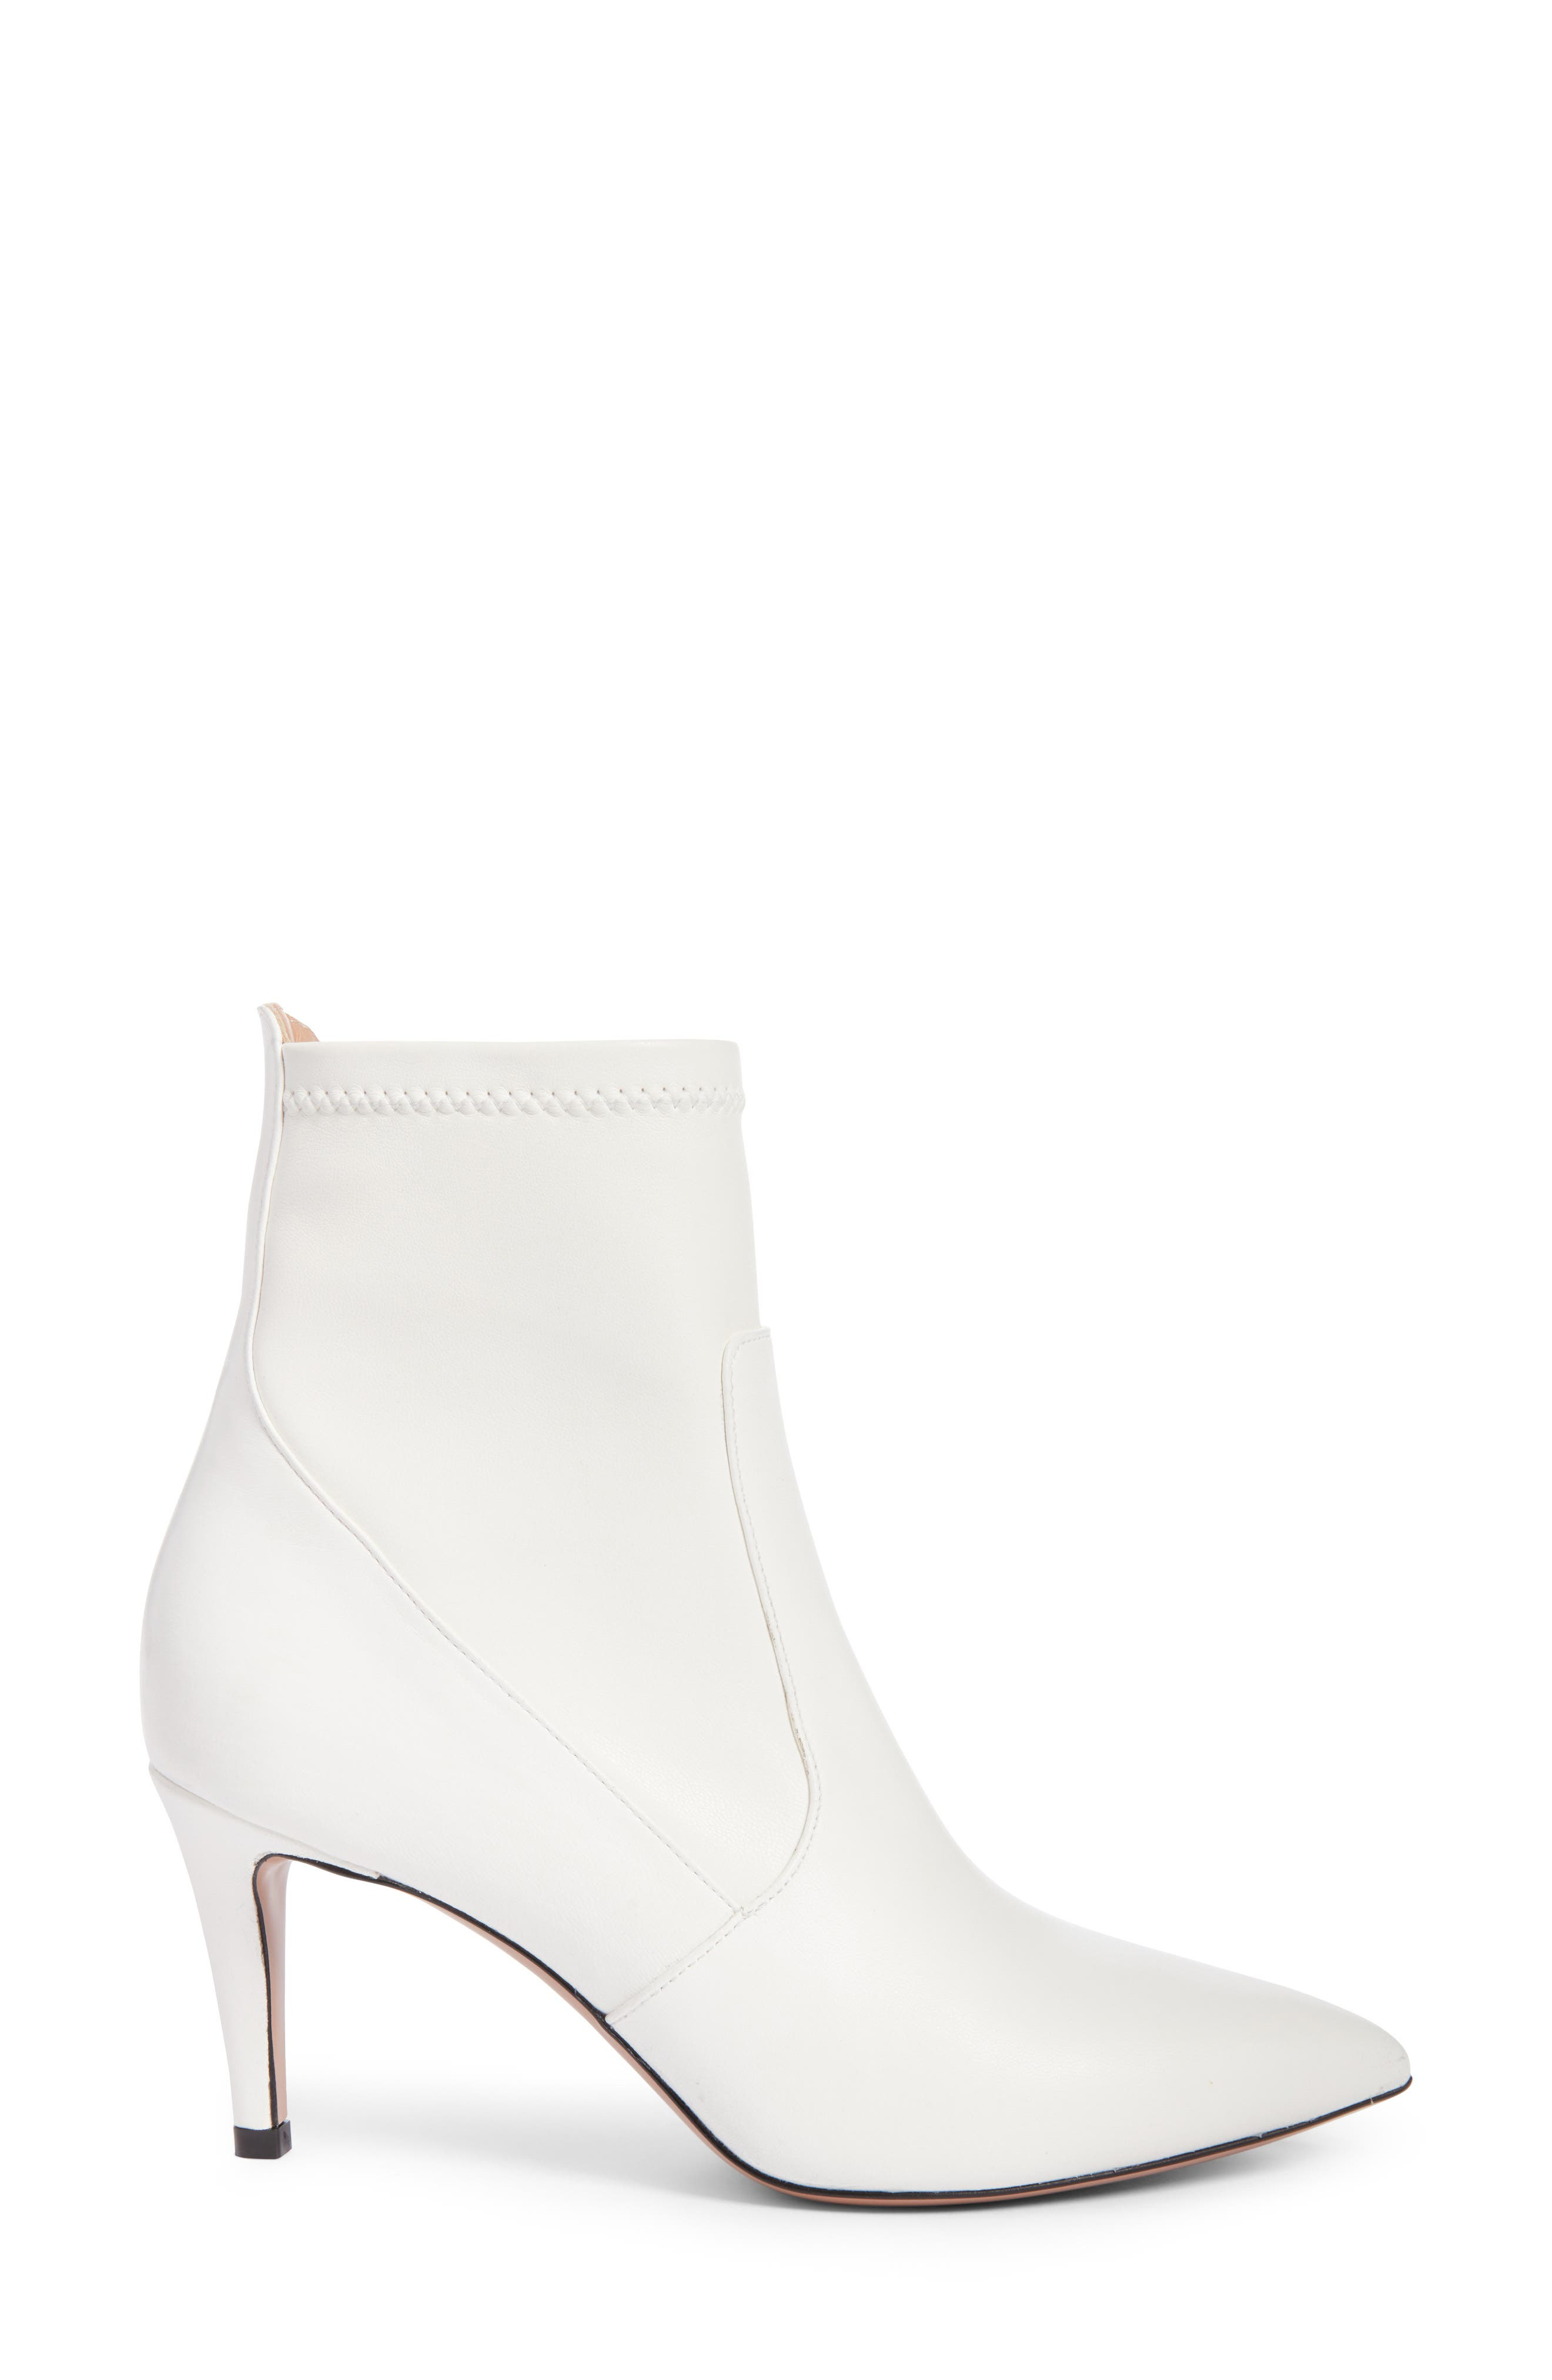 Abra Bootie,                             Alternate thumbnail 5, color,                             White Leather